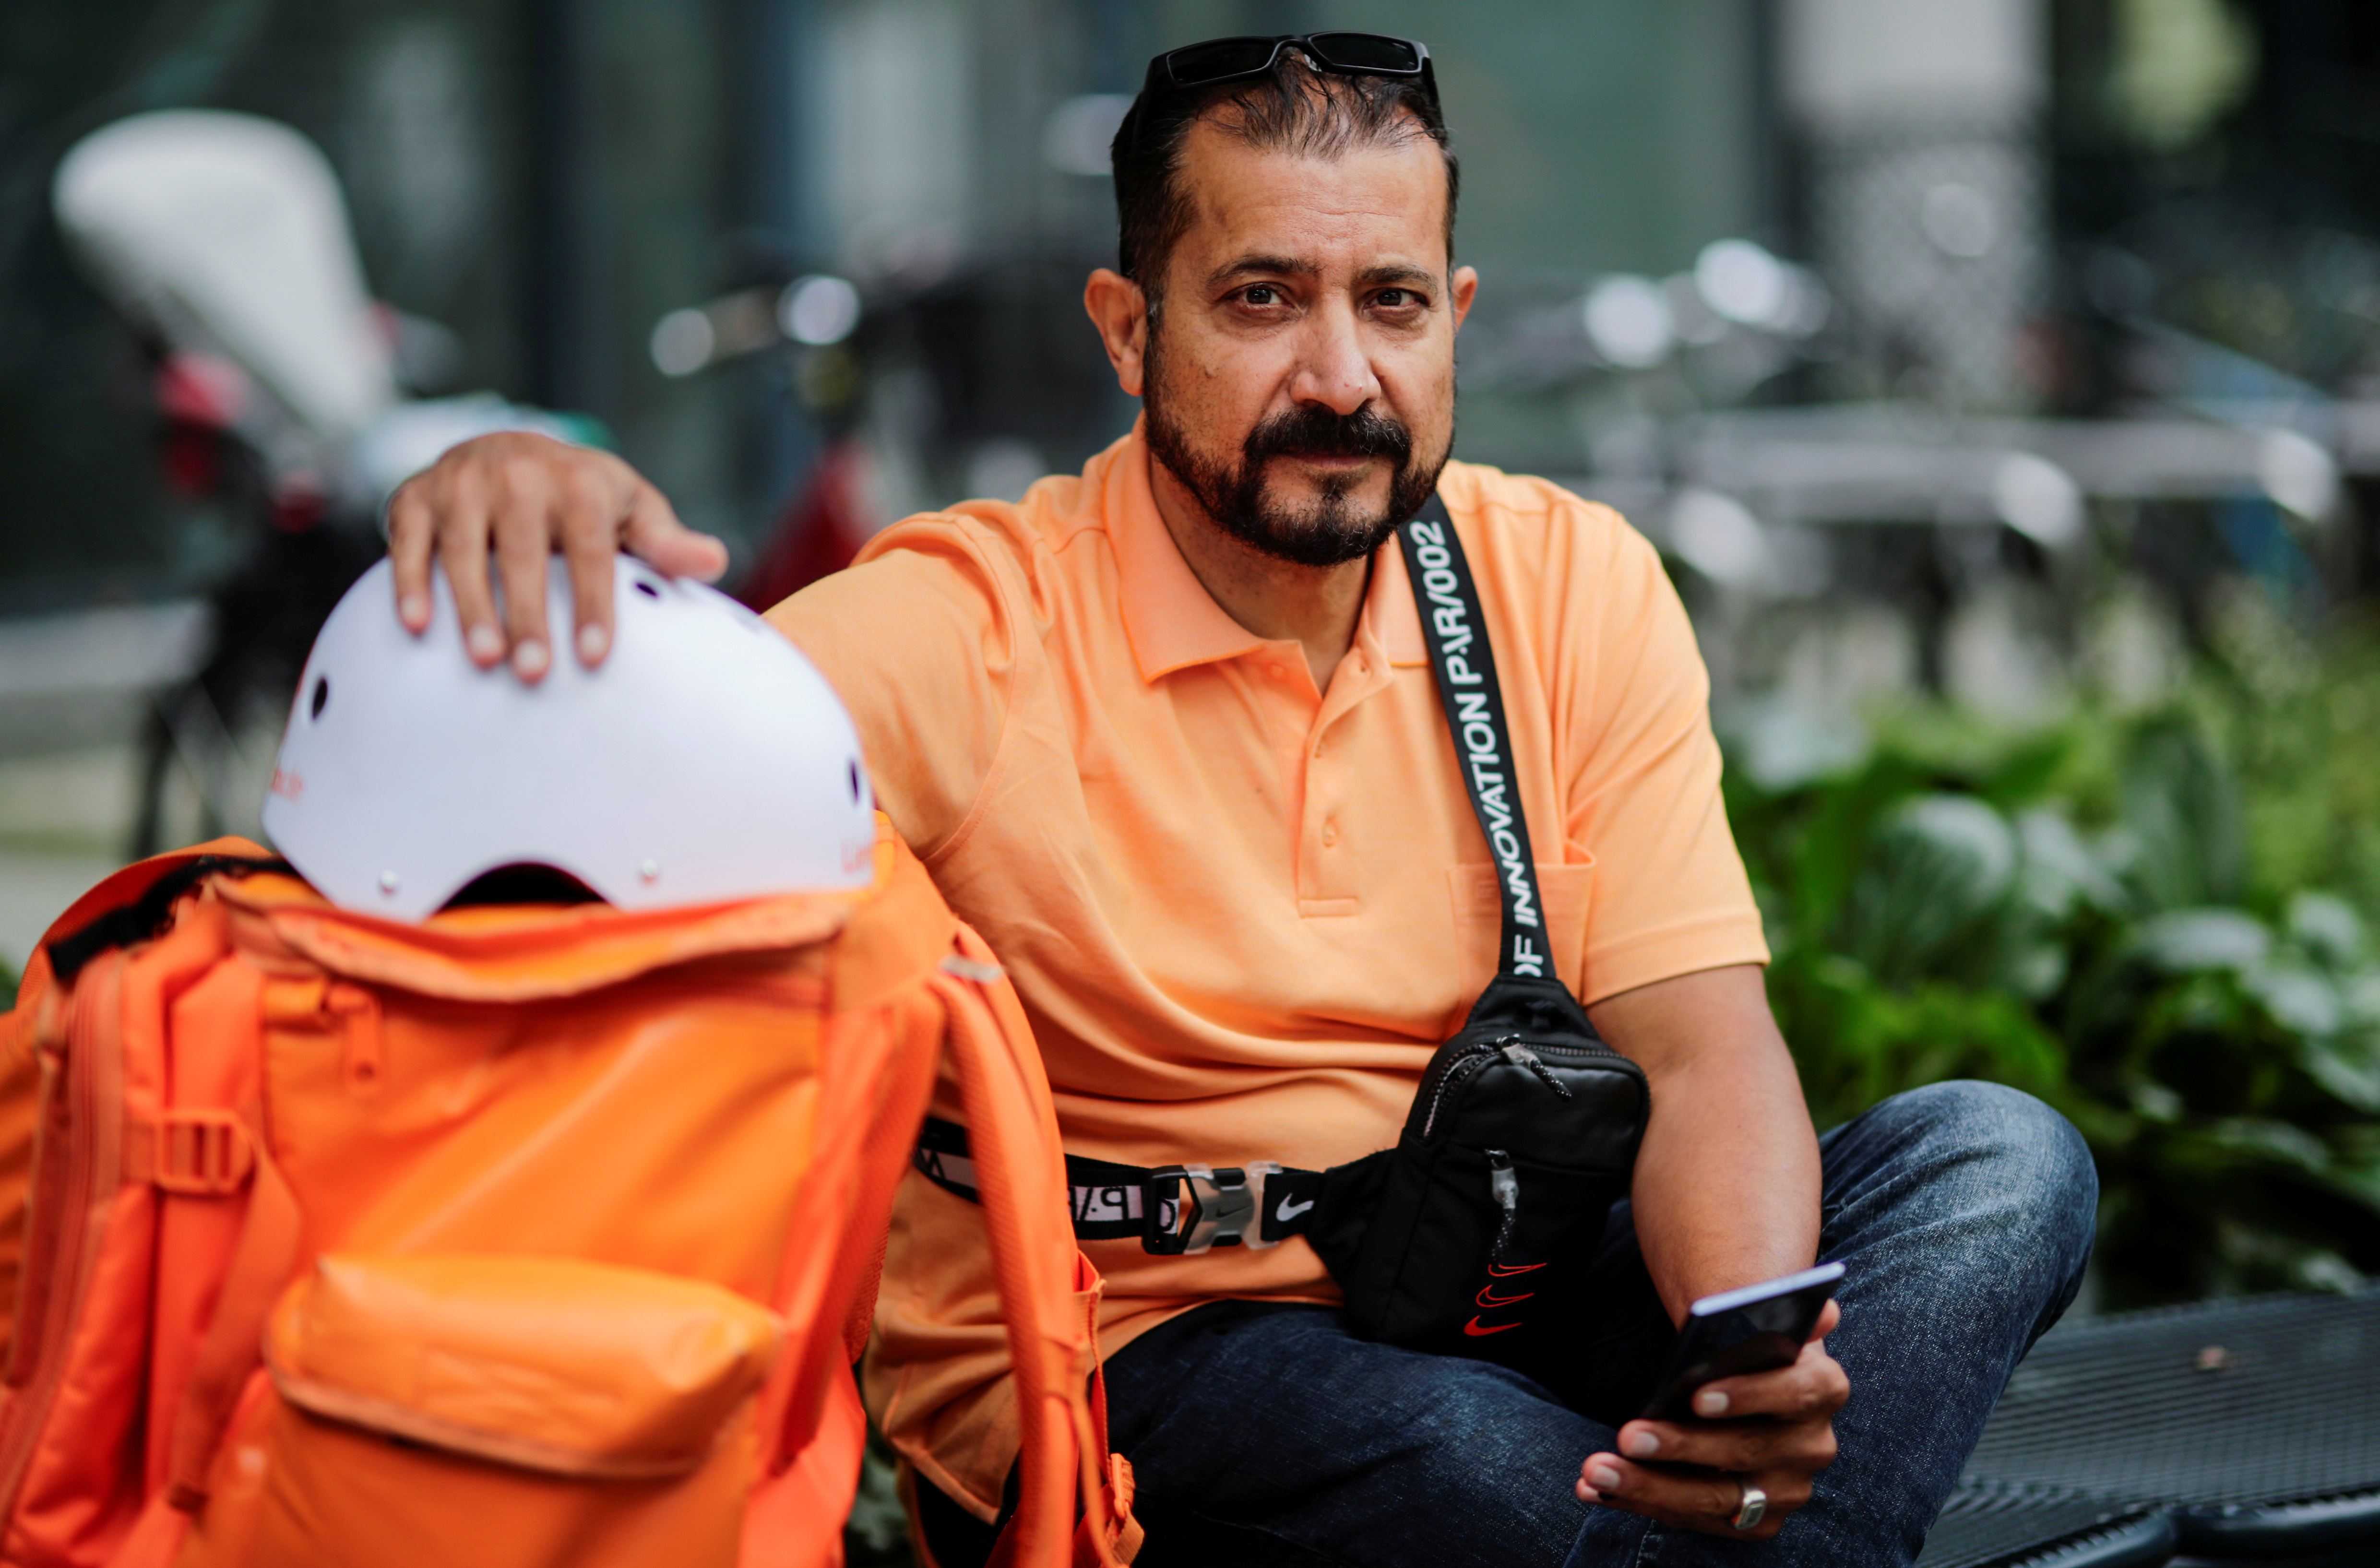 Former Afghan Communication Minister Sayed Sadaat sits with his gear as he works for the food delivery service Lieferando in Leipzig, Germany, August 26, 2021. REUTERS/Hannibal Hanschke